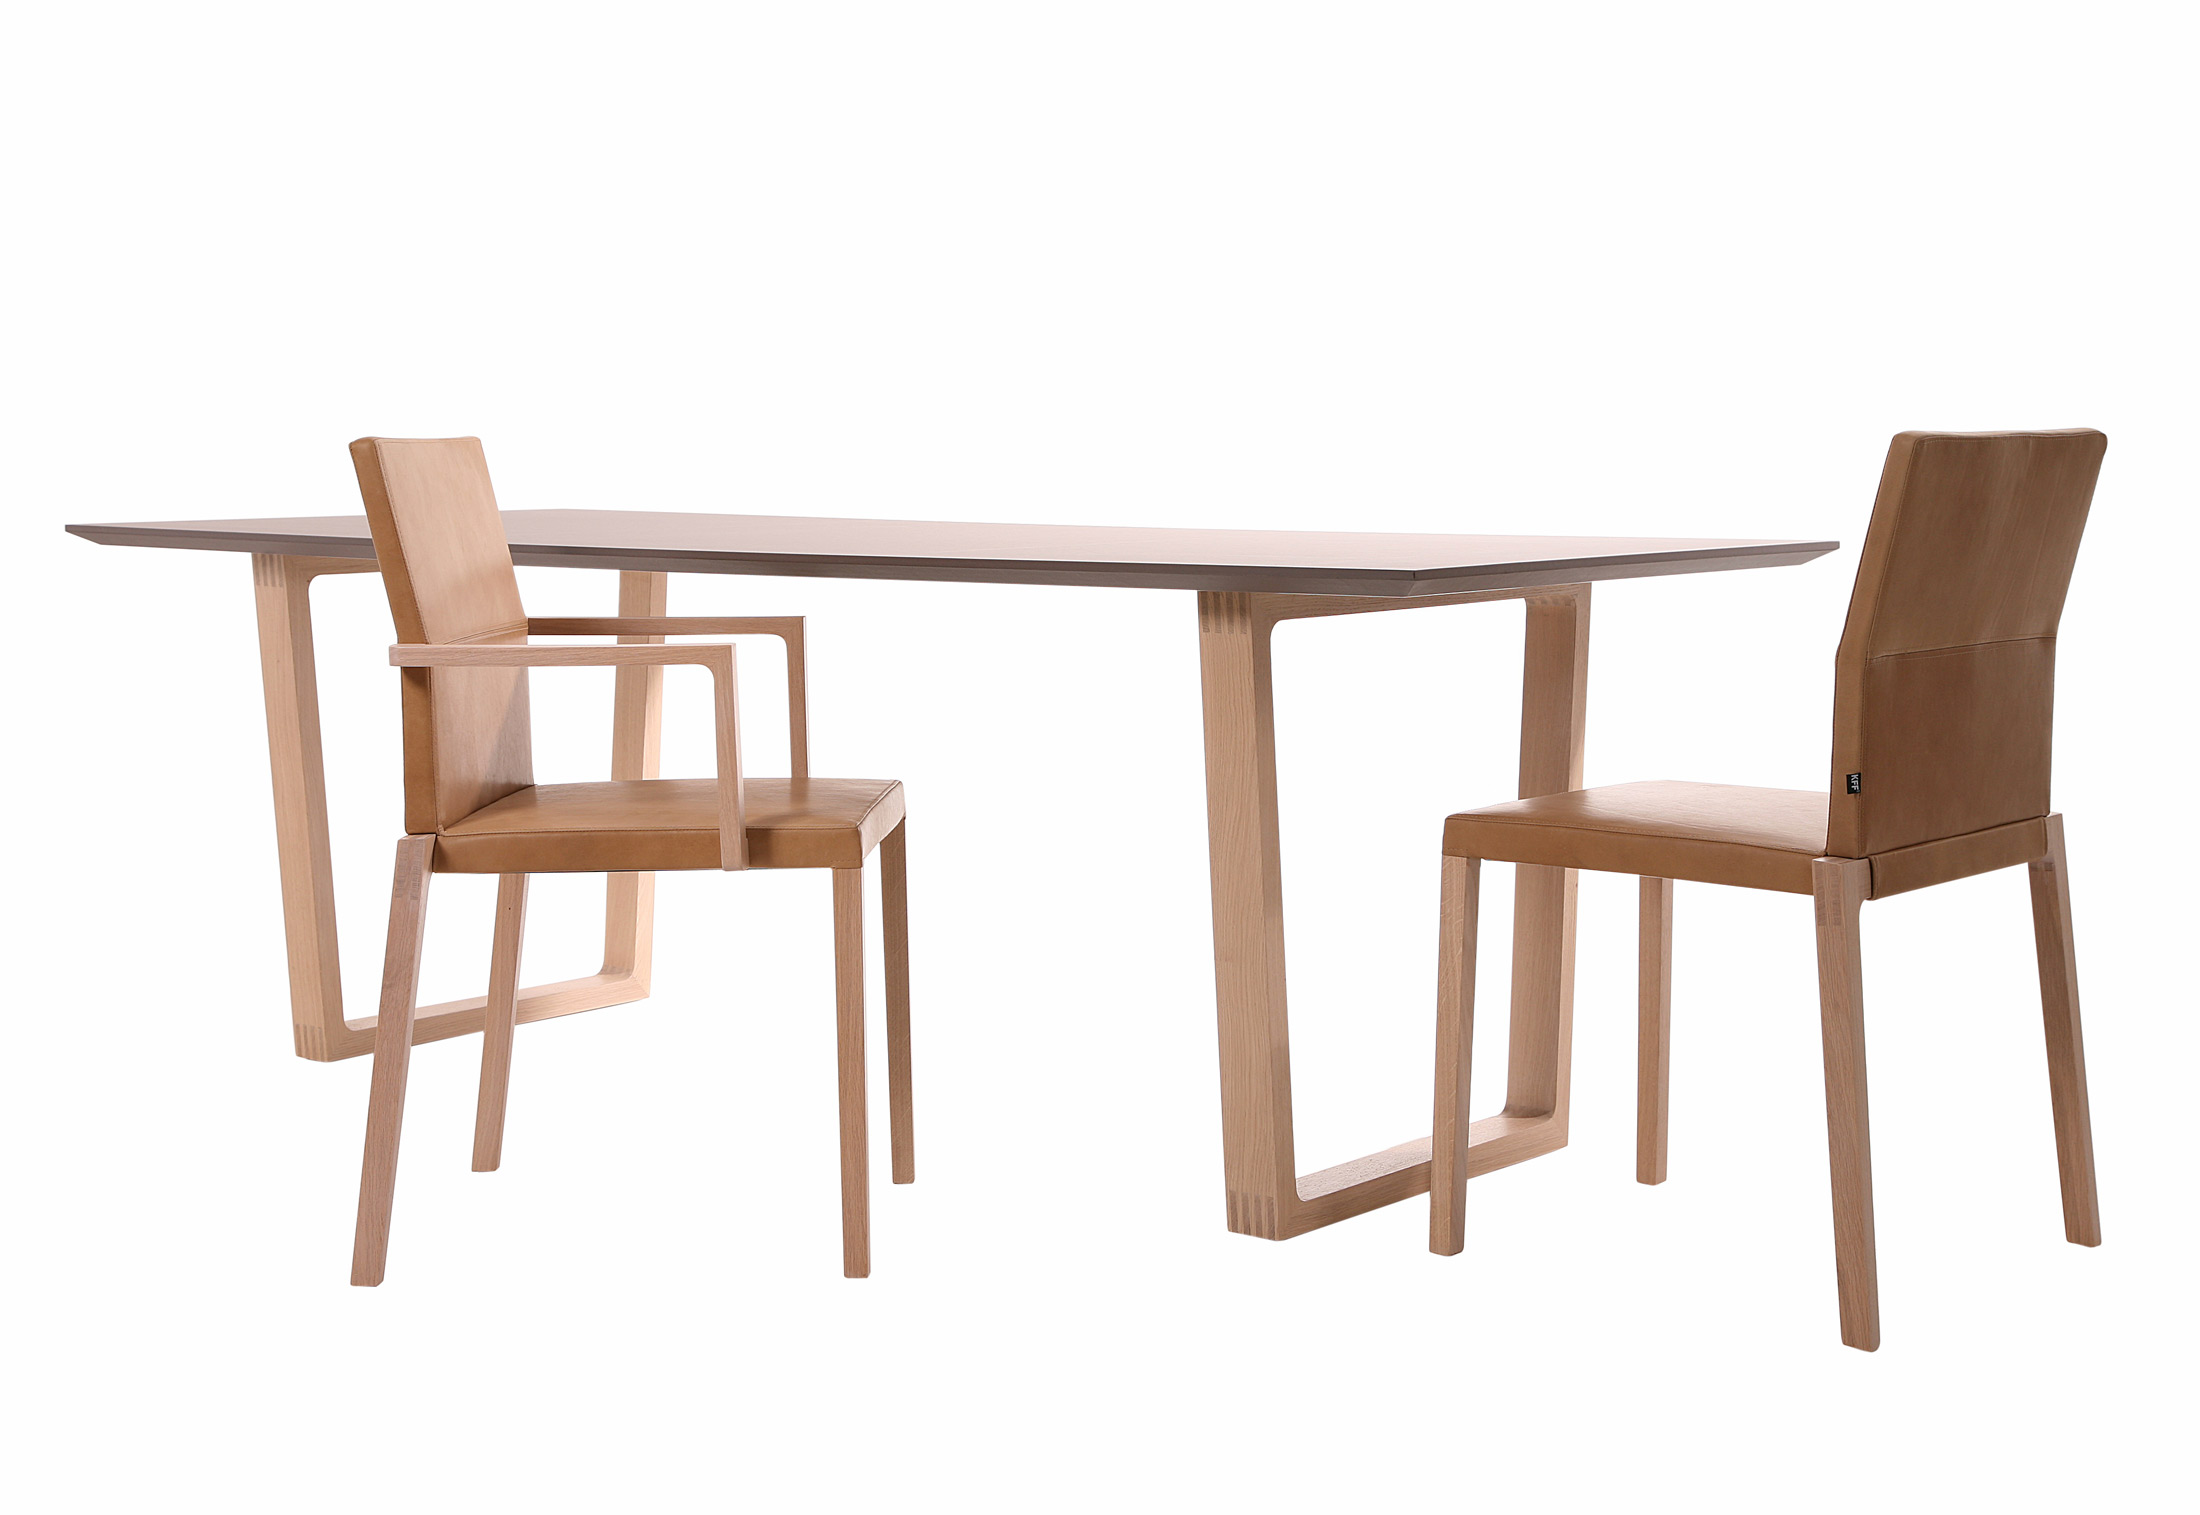 Baltas table by kff stylepark - Interior design jobs without a degree ...